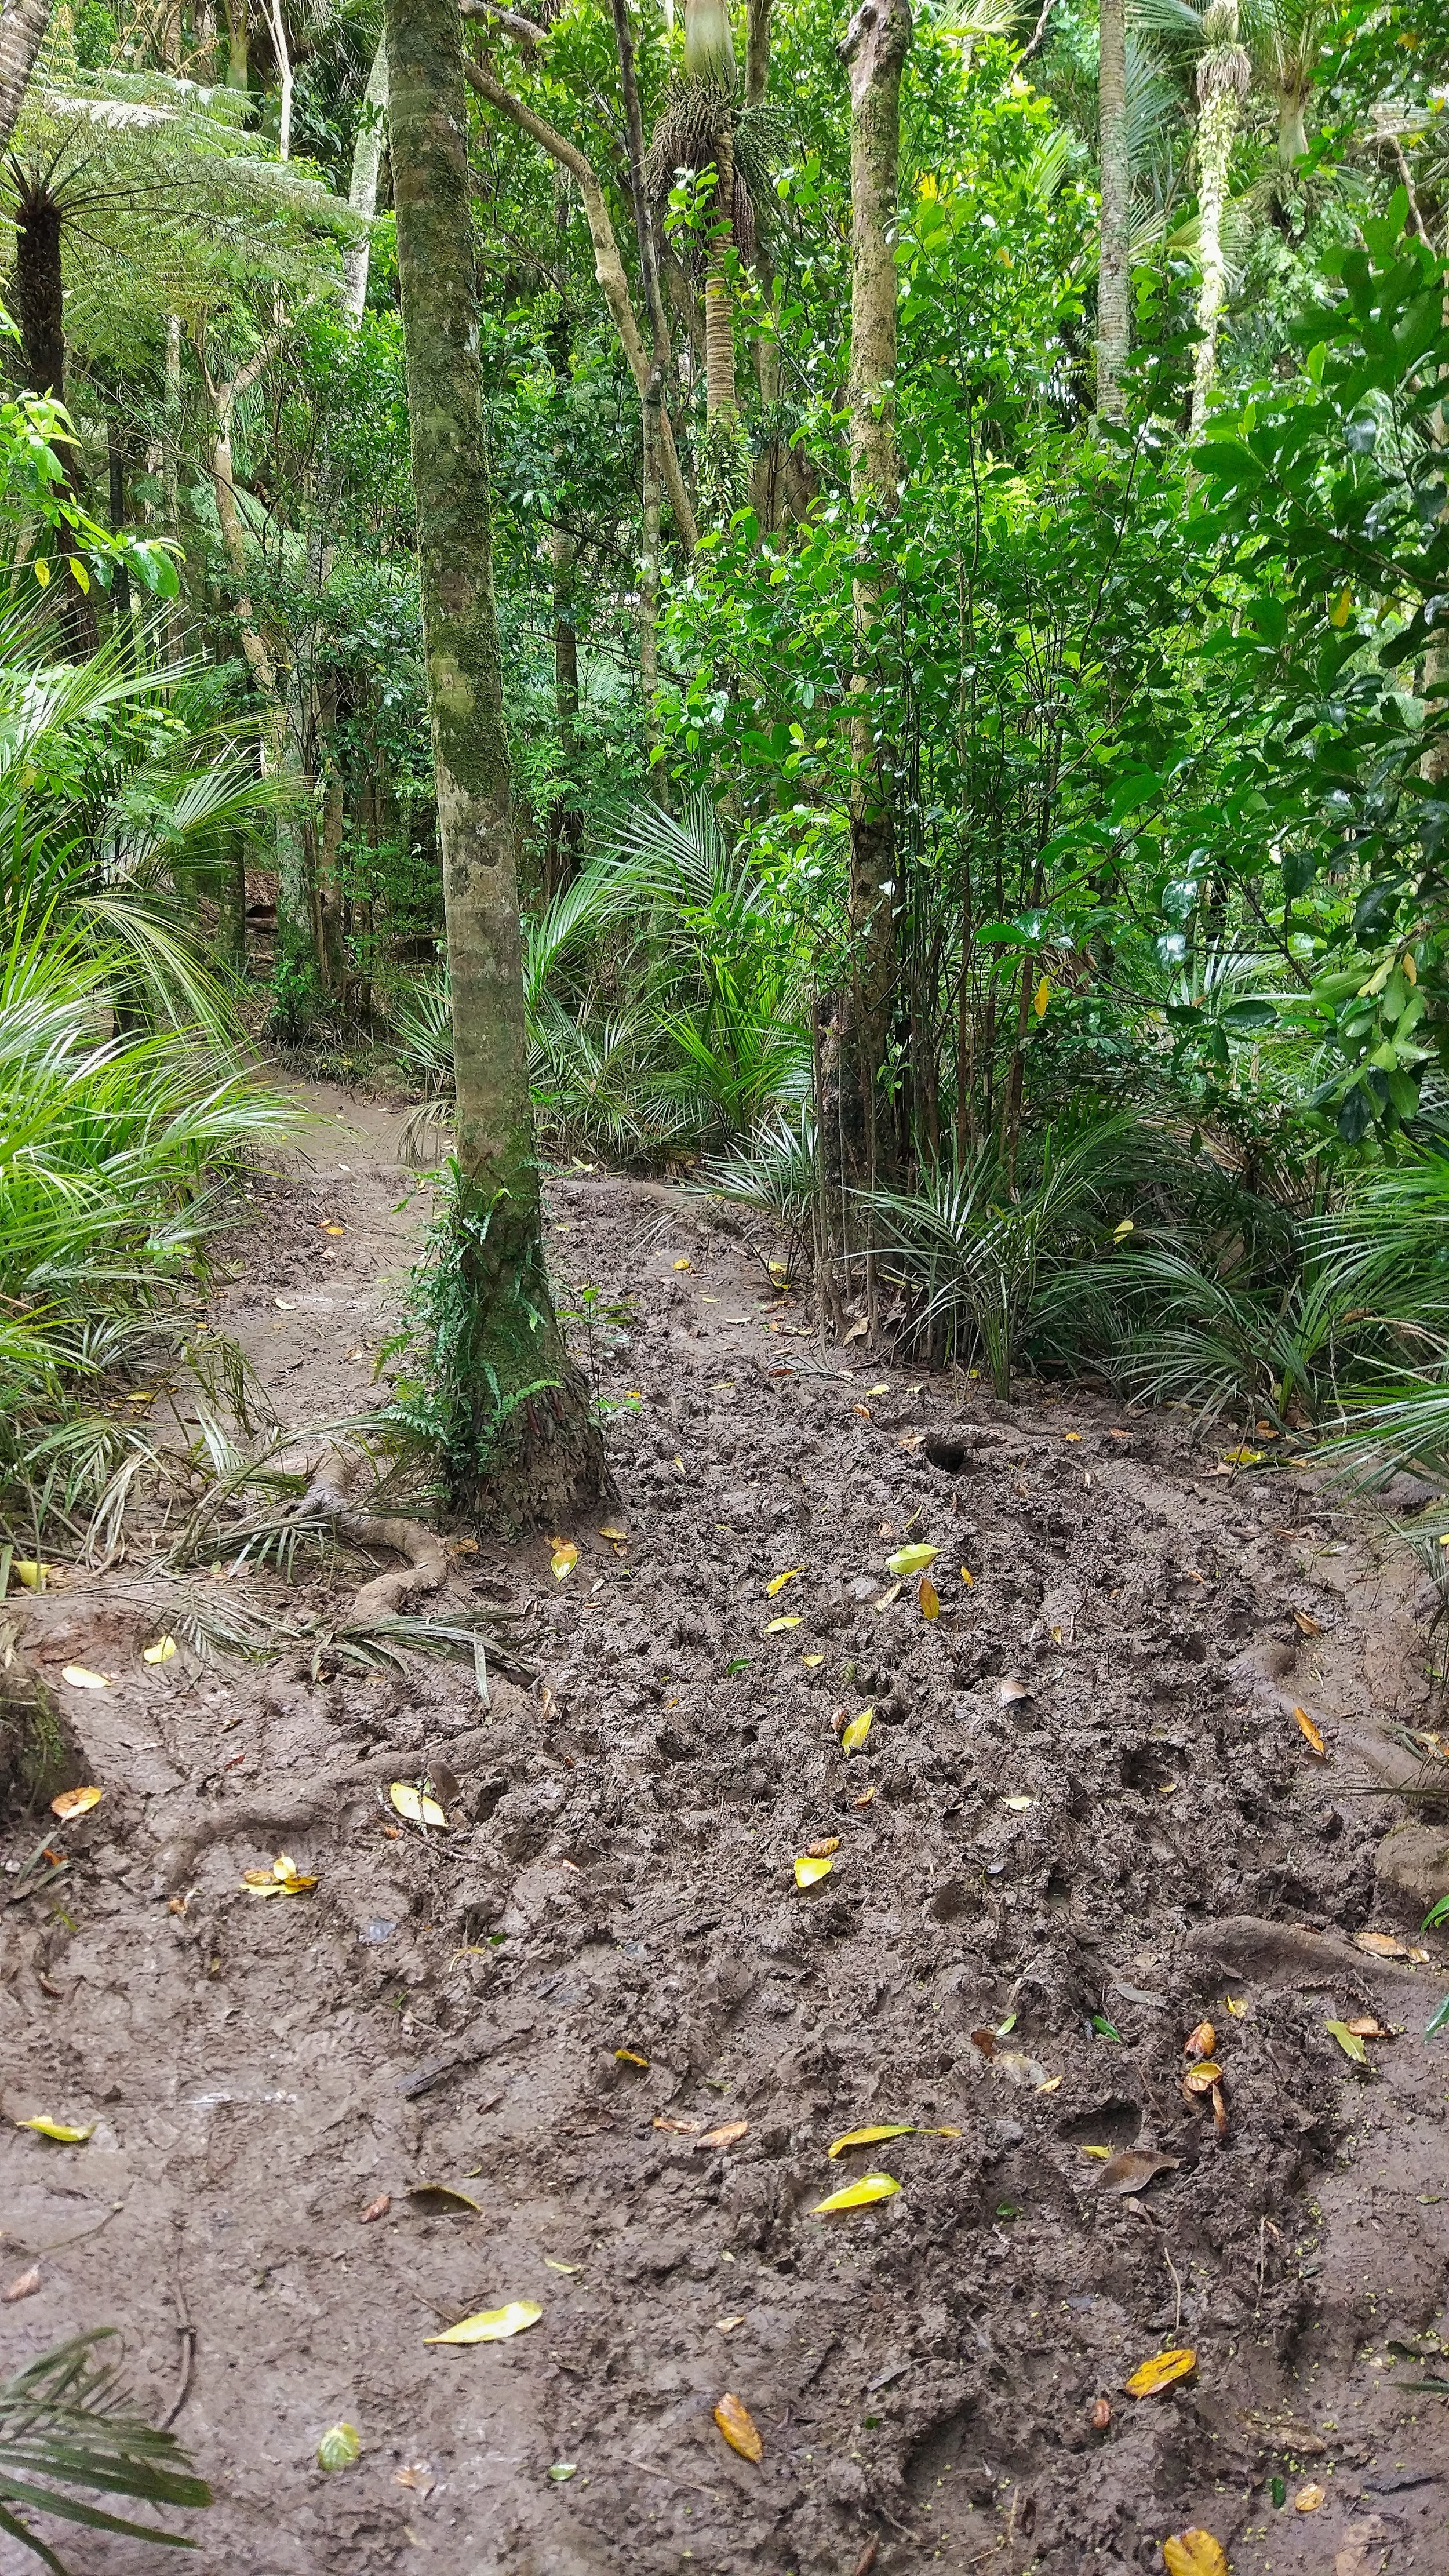 20171022_New_Zealand_Clevedon_scenic_reserve_mud.jpeg